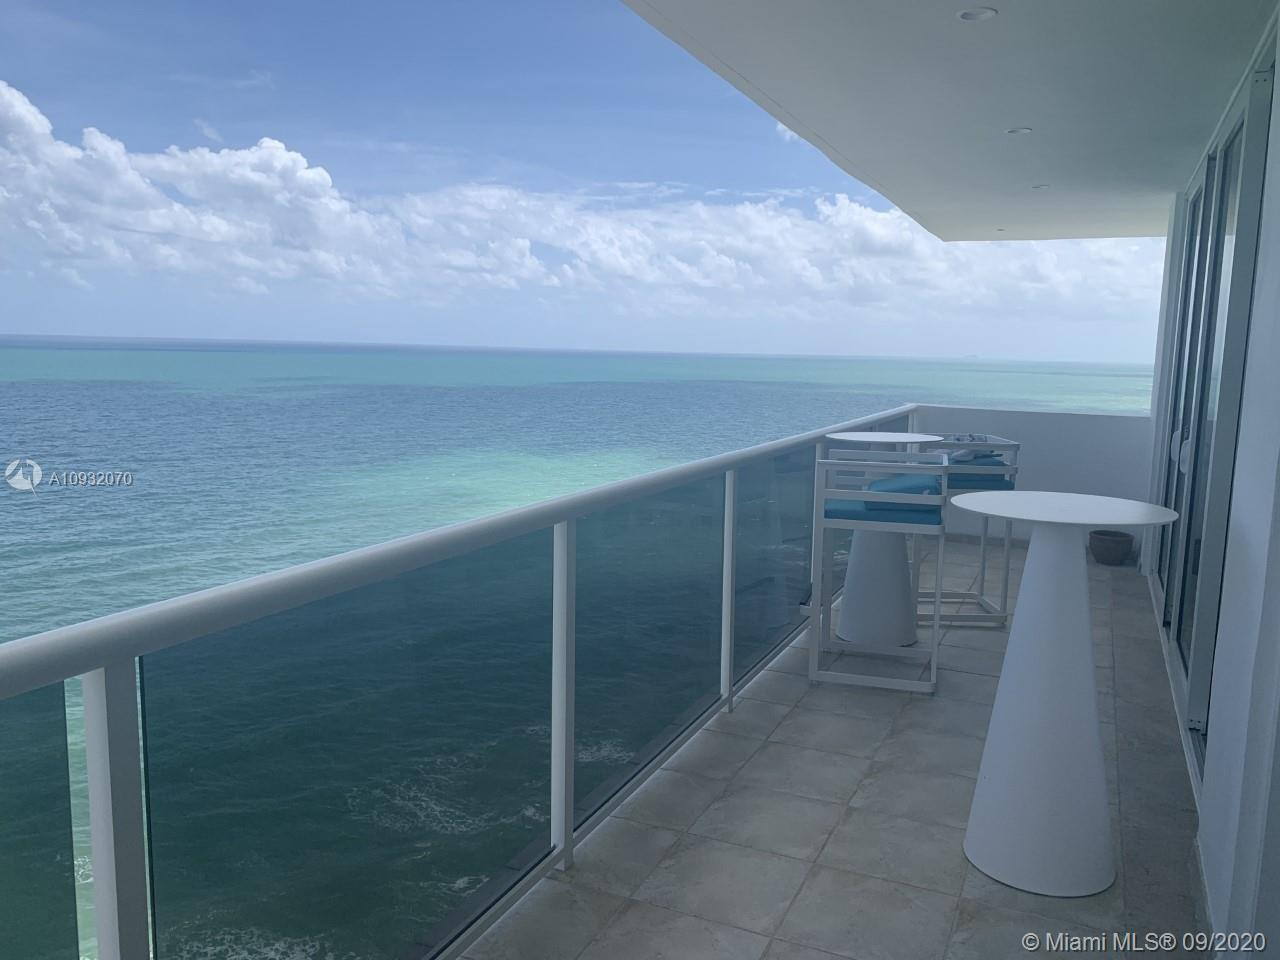 LOOKING FOR A NEW OCEAN VIEW HOME? LOOK NO FURTHER!! GORGEOUS REMODELED PENTHOUSE CONDO UNIT WITH GO